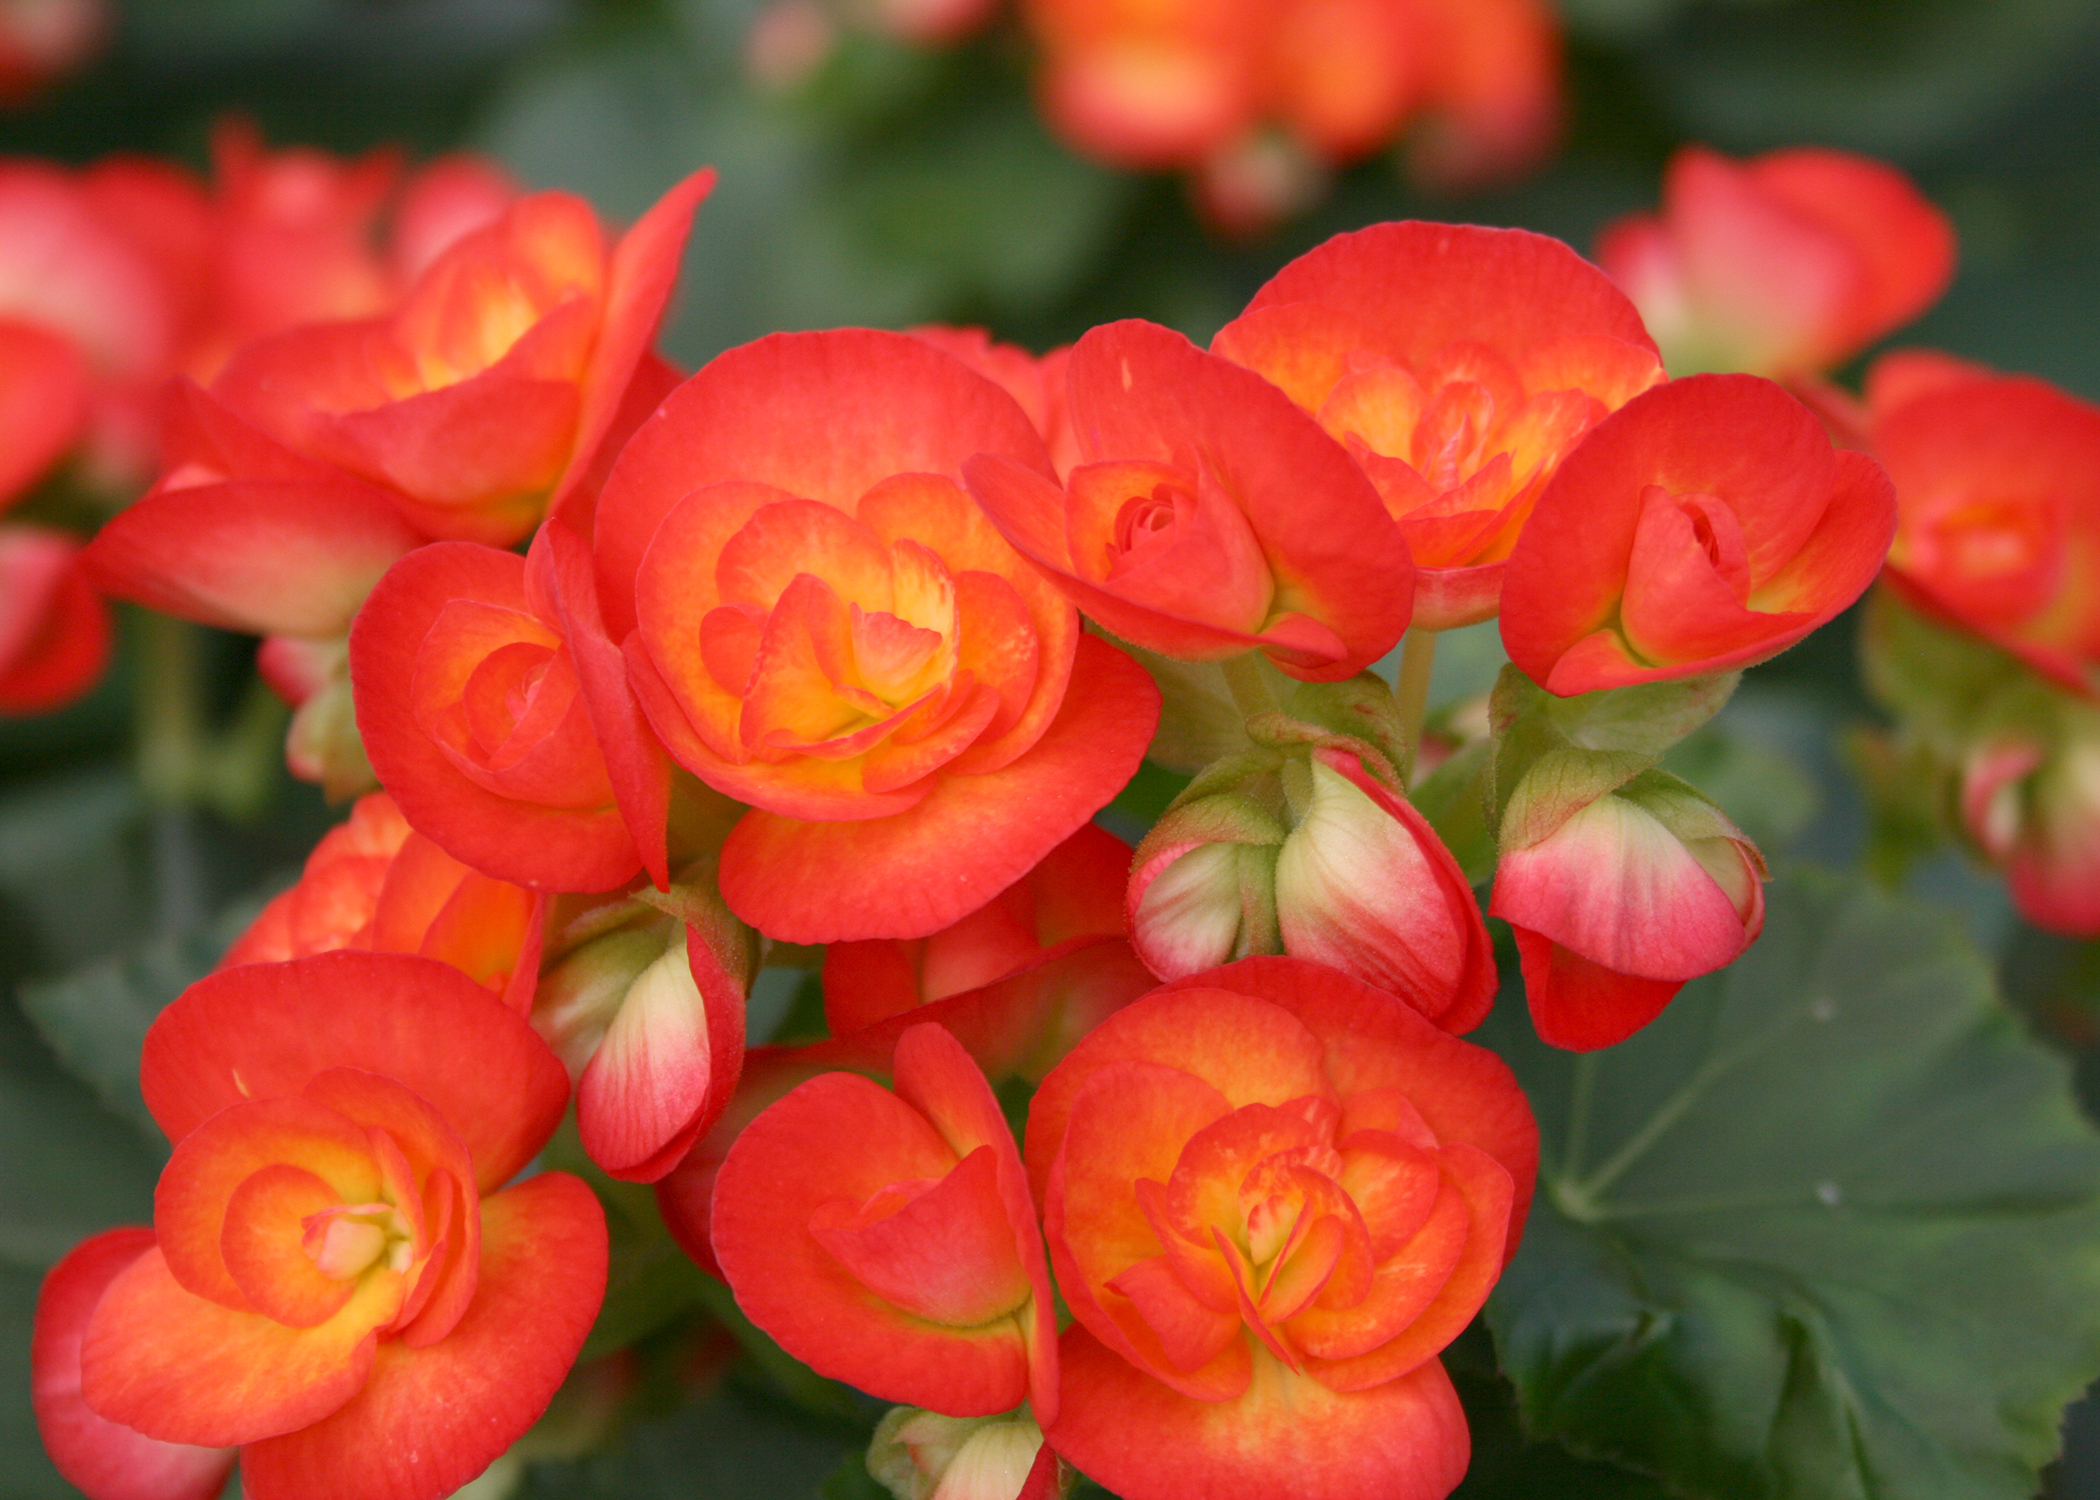 Having plants such as these Carneval begonias indoors during the winter adds beauty and a sense of charm and serenity. (Photo by MSU Extension/Gary Bachman)